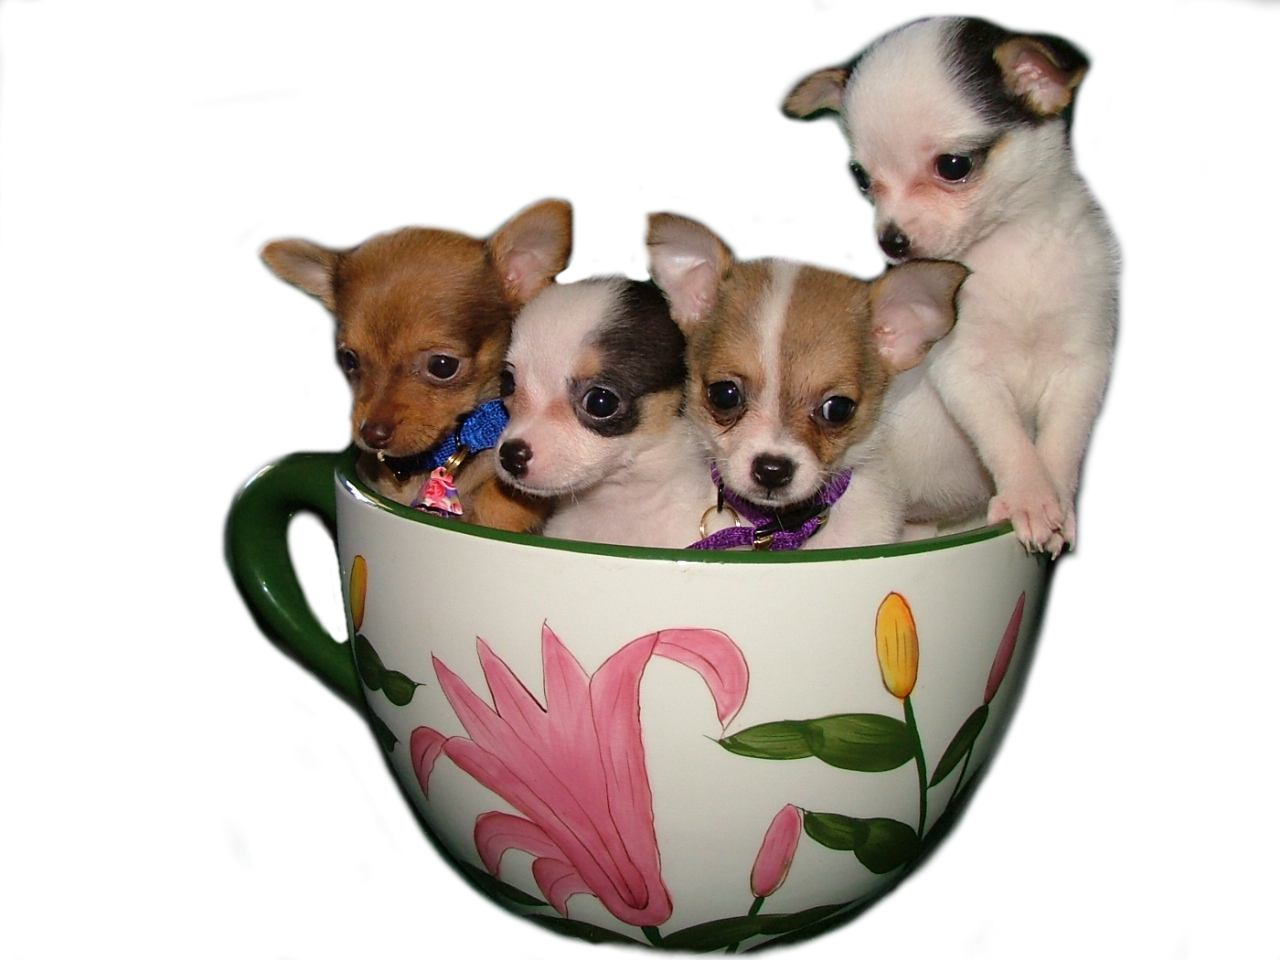 Teacup dogs for sale nothing more than a passing fad